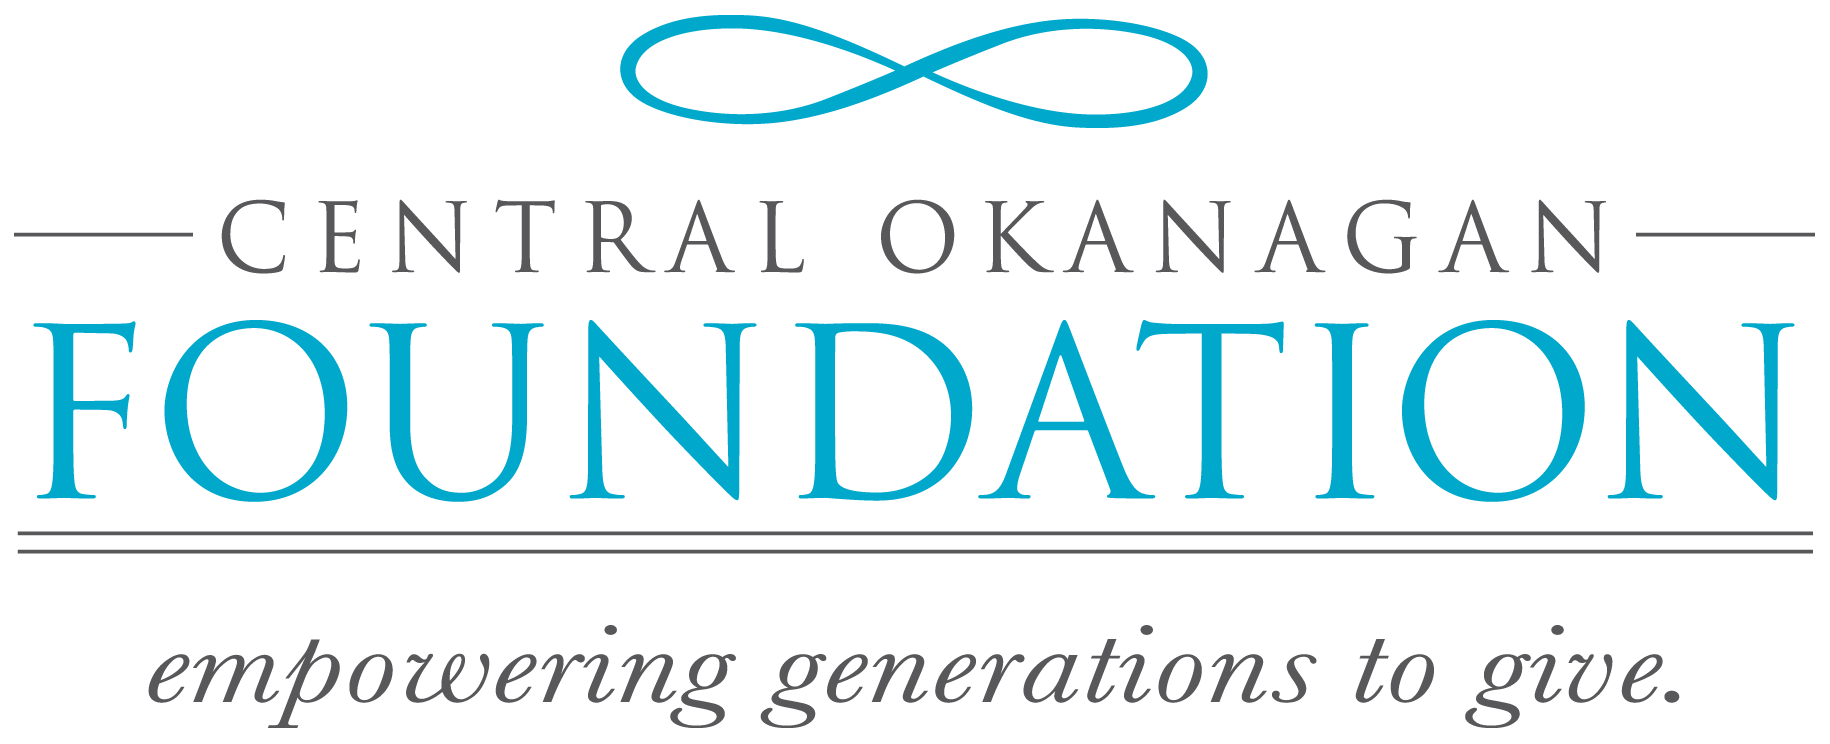 Central Okanagan Foundation partnership with Purppl - Empowering generations to give.